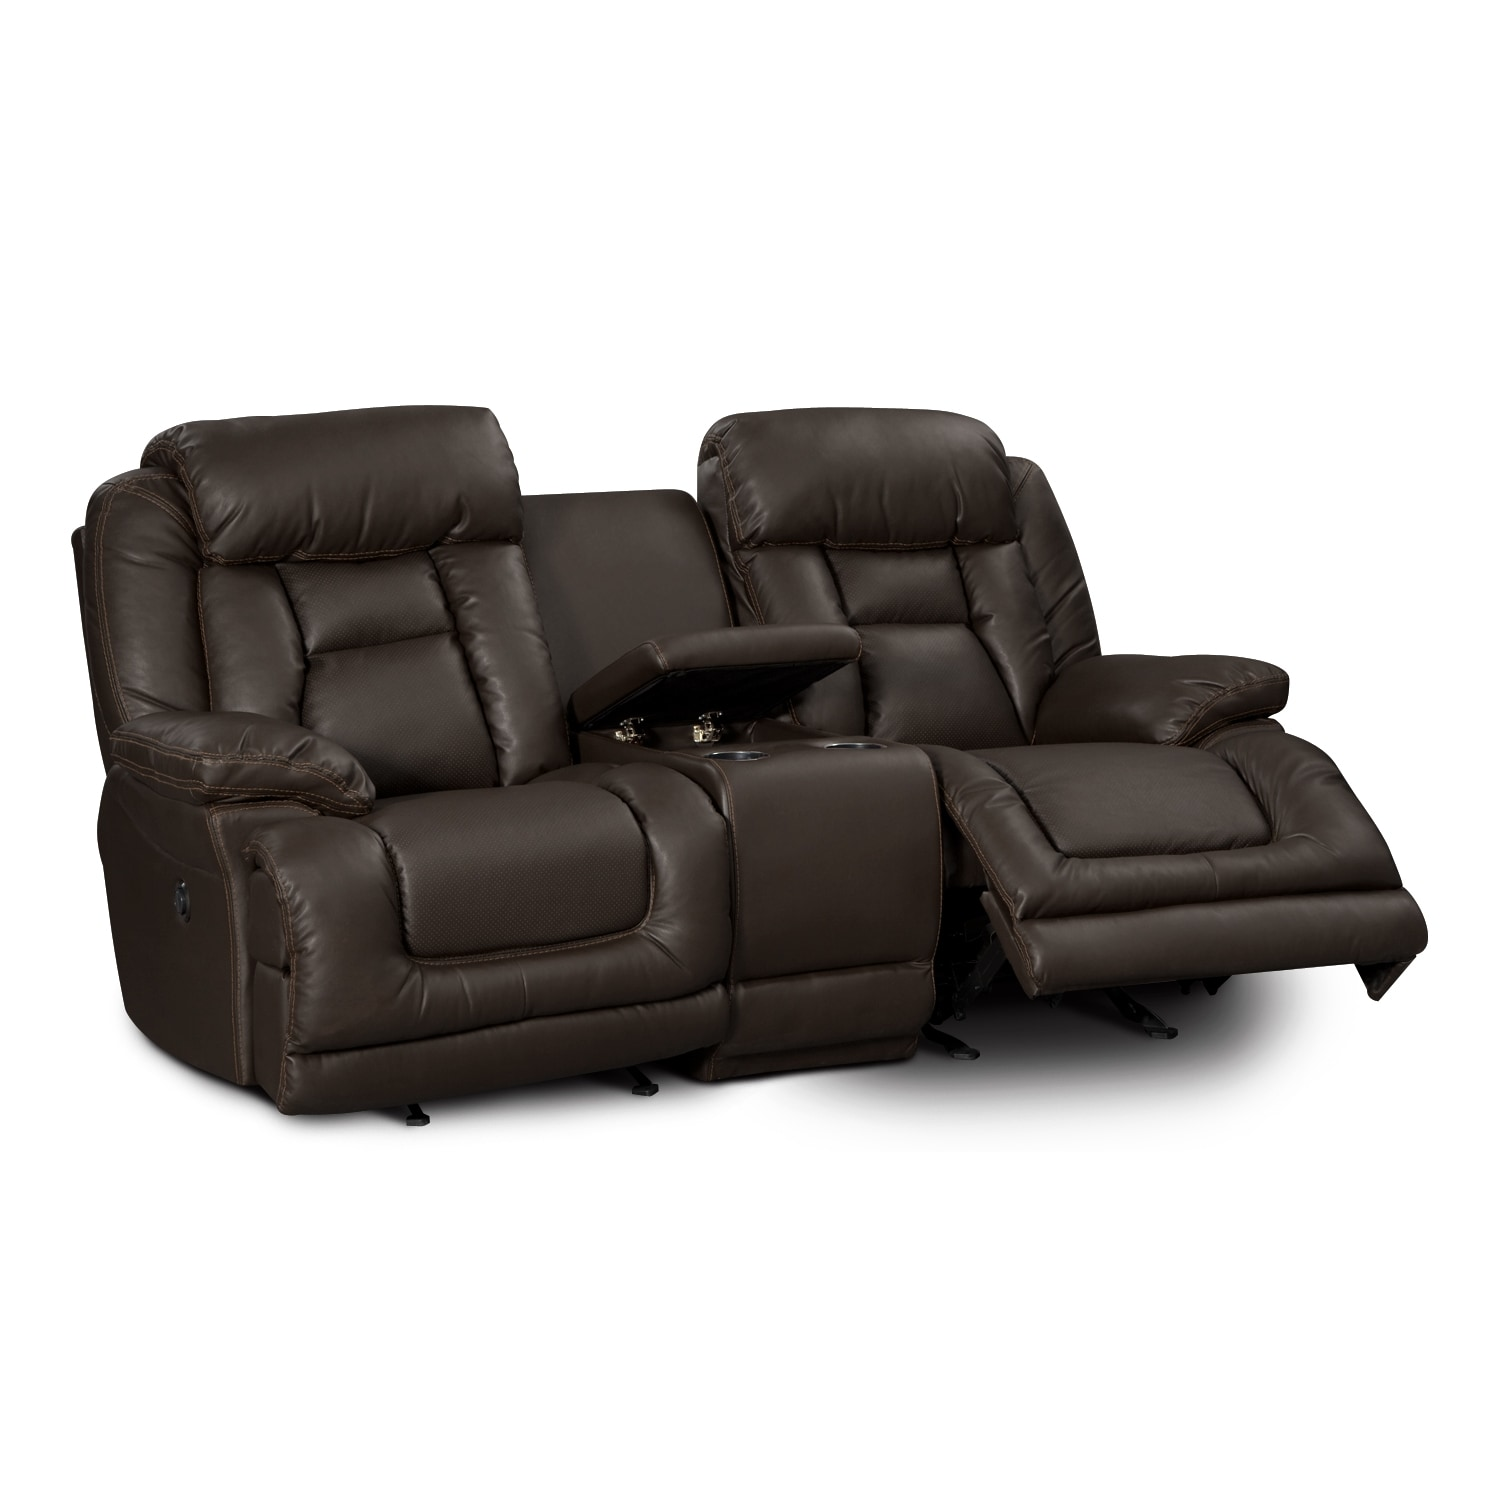 Furnishings for every room online and store furniture sales value city furniture Power loveseat recliner